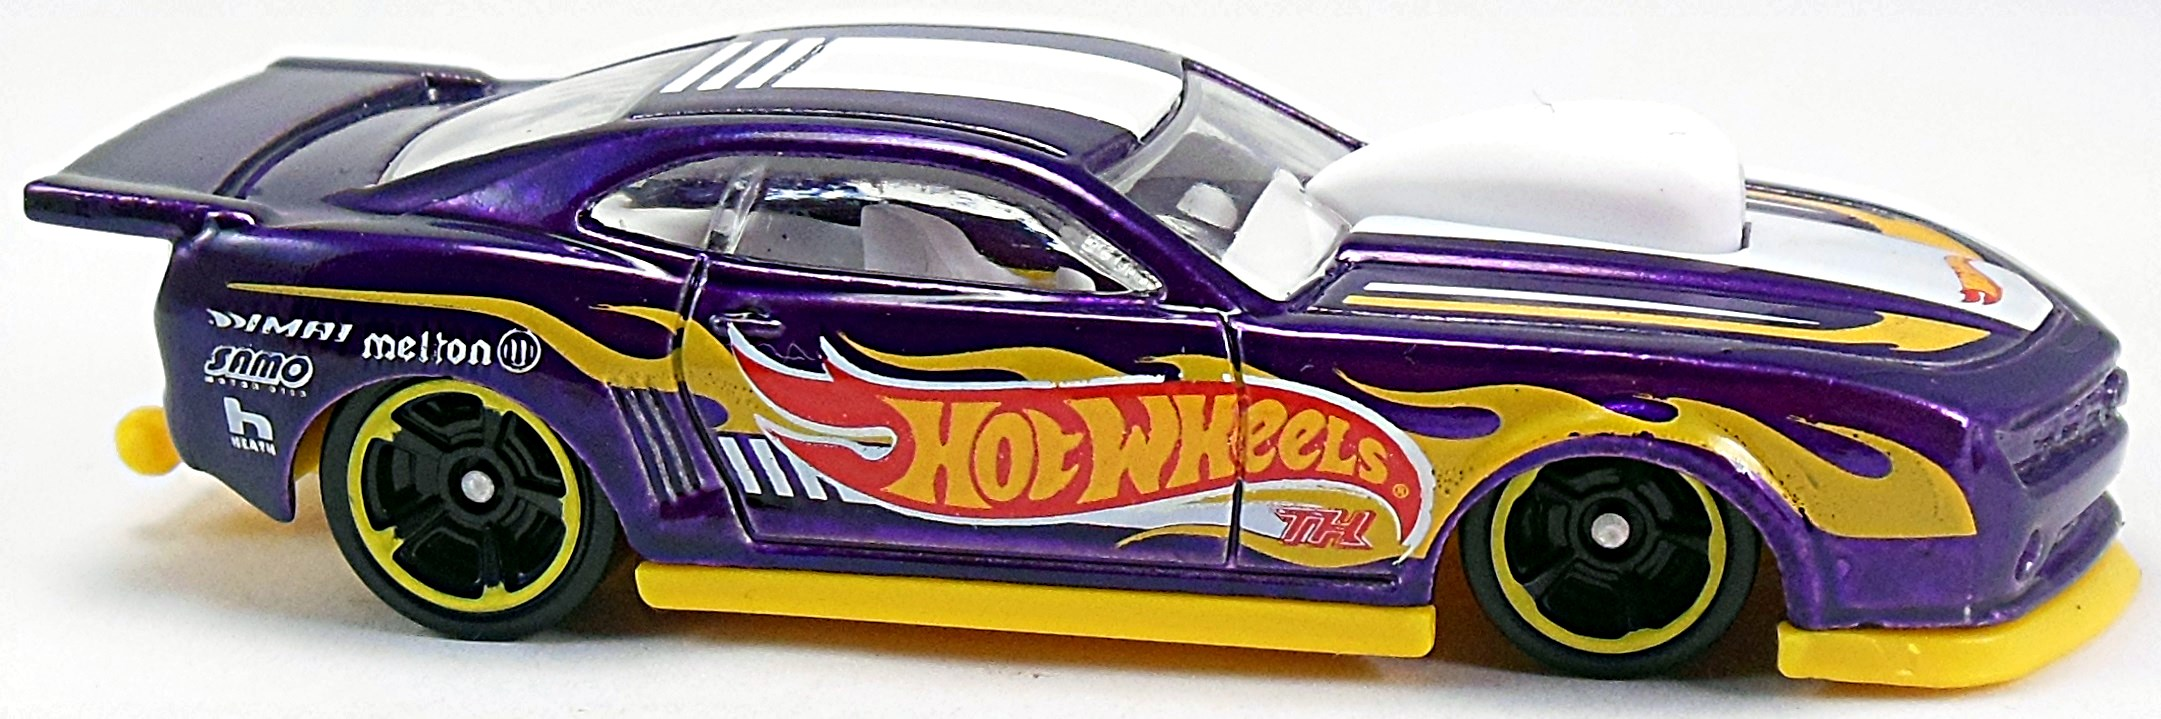 2016 Treasure Hunts Hot Wheels Newsletter